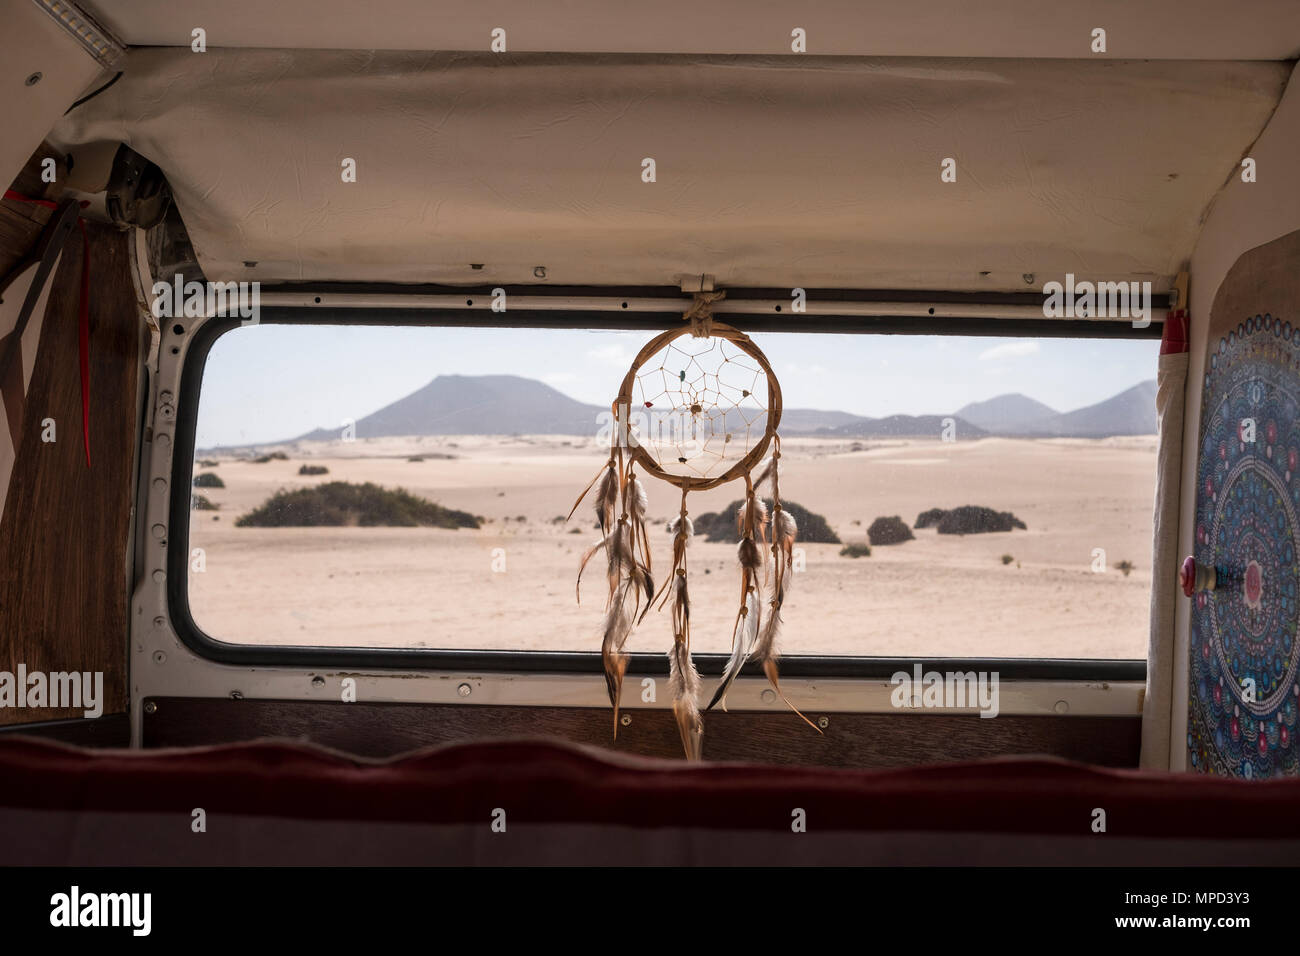 vanlife concept for different alternative life and wy of travel. Dreamcatcher on the window with desert and mountains outdoor. mandale at the left, qu - Stock Image